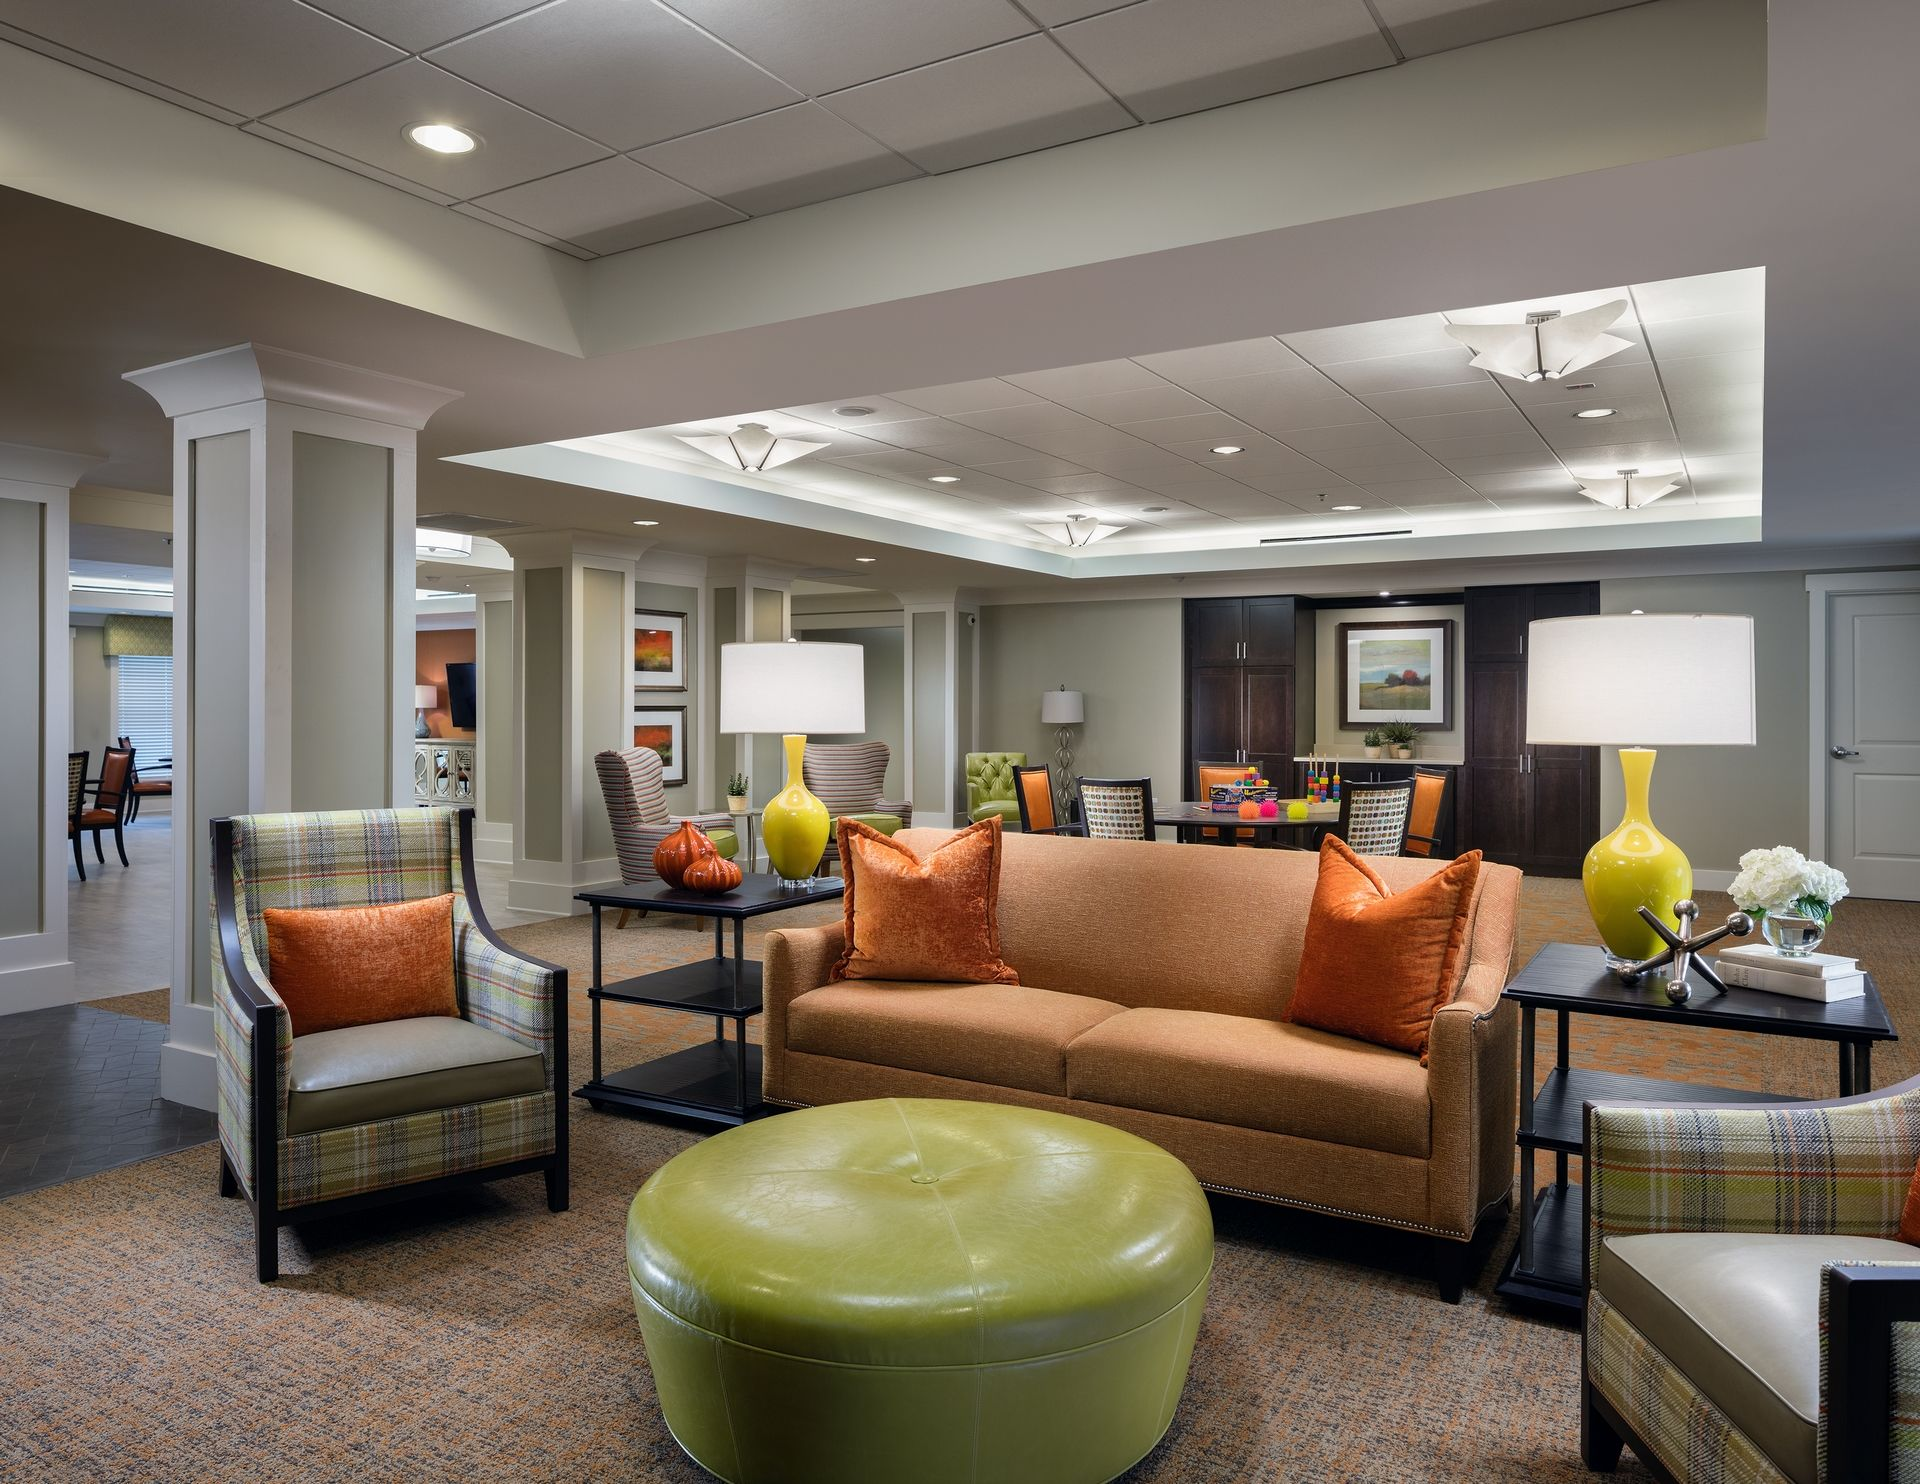 Memory Care social space lounge Assisted Living Dementia Alzheimers THW Design senior living architects